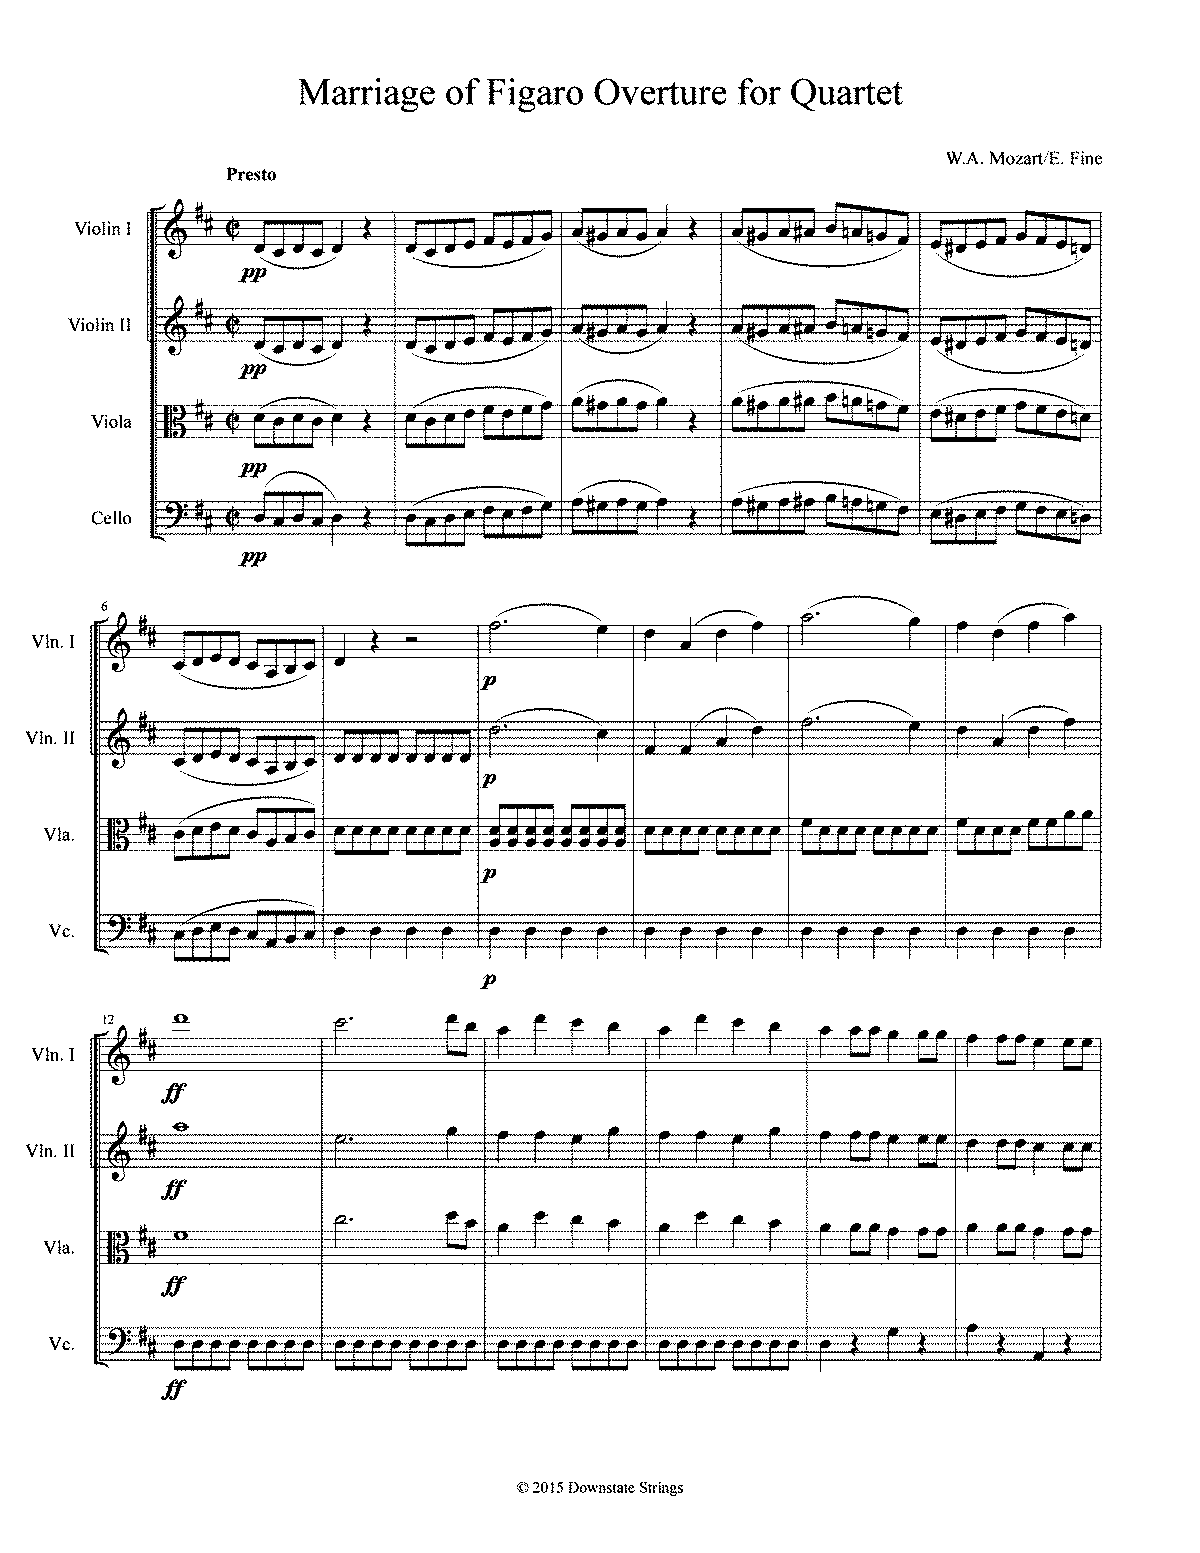 PMLP03845-Marriage of Figaro Overture for Quartet Score and Parts.pdf